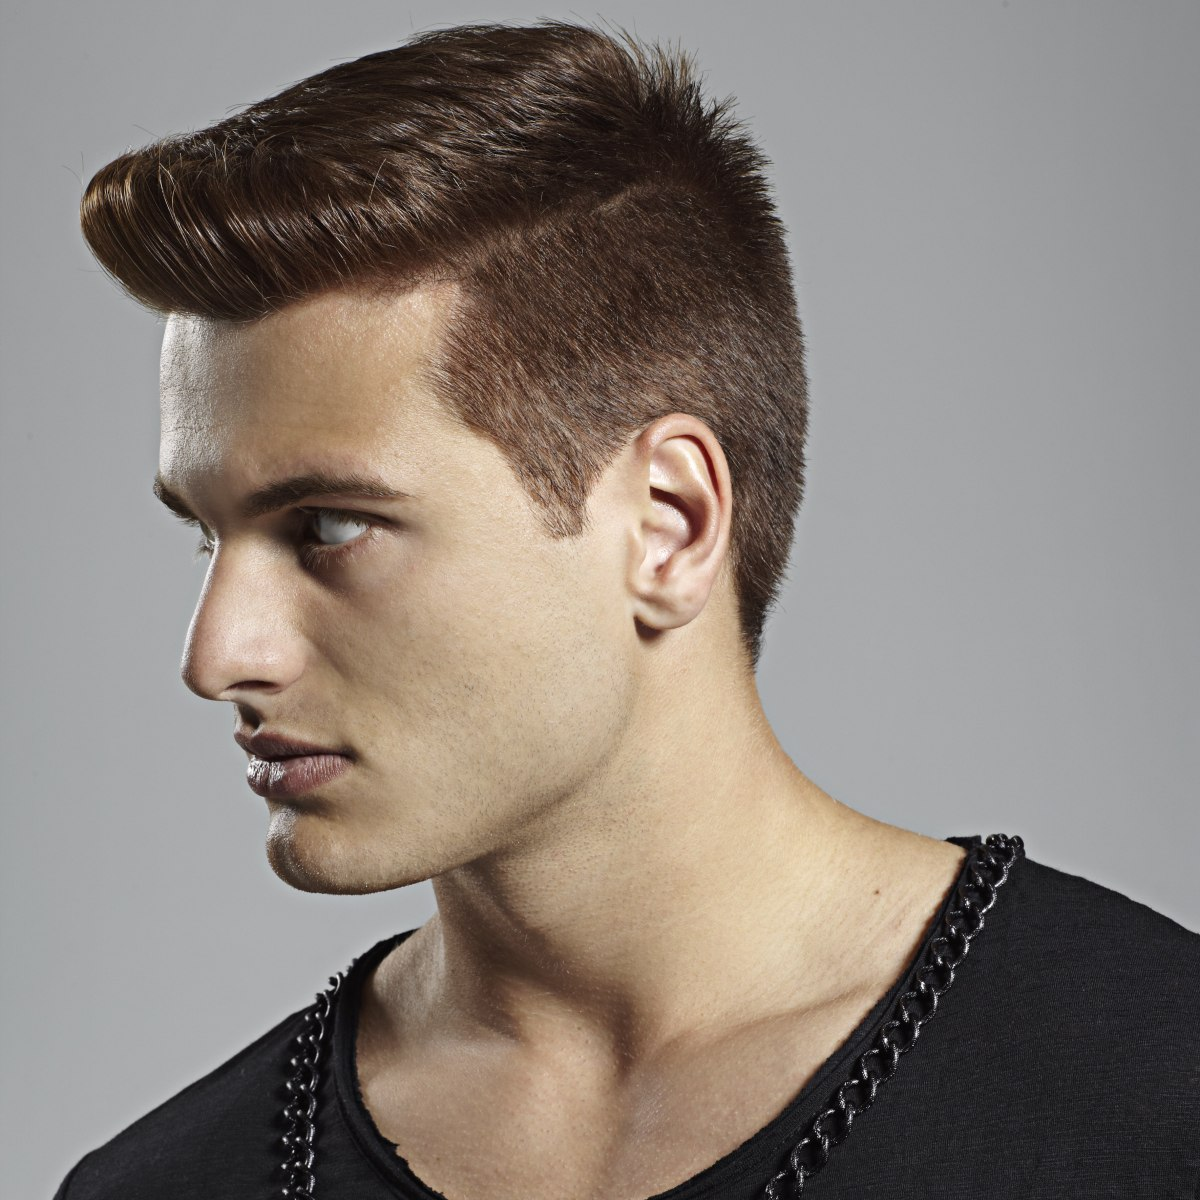 Nice Haircut For Men Combining A Military Buzz Cut And A Quiff